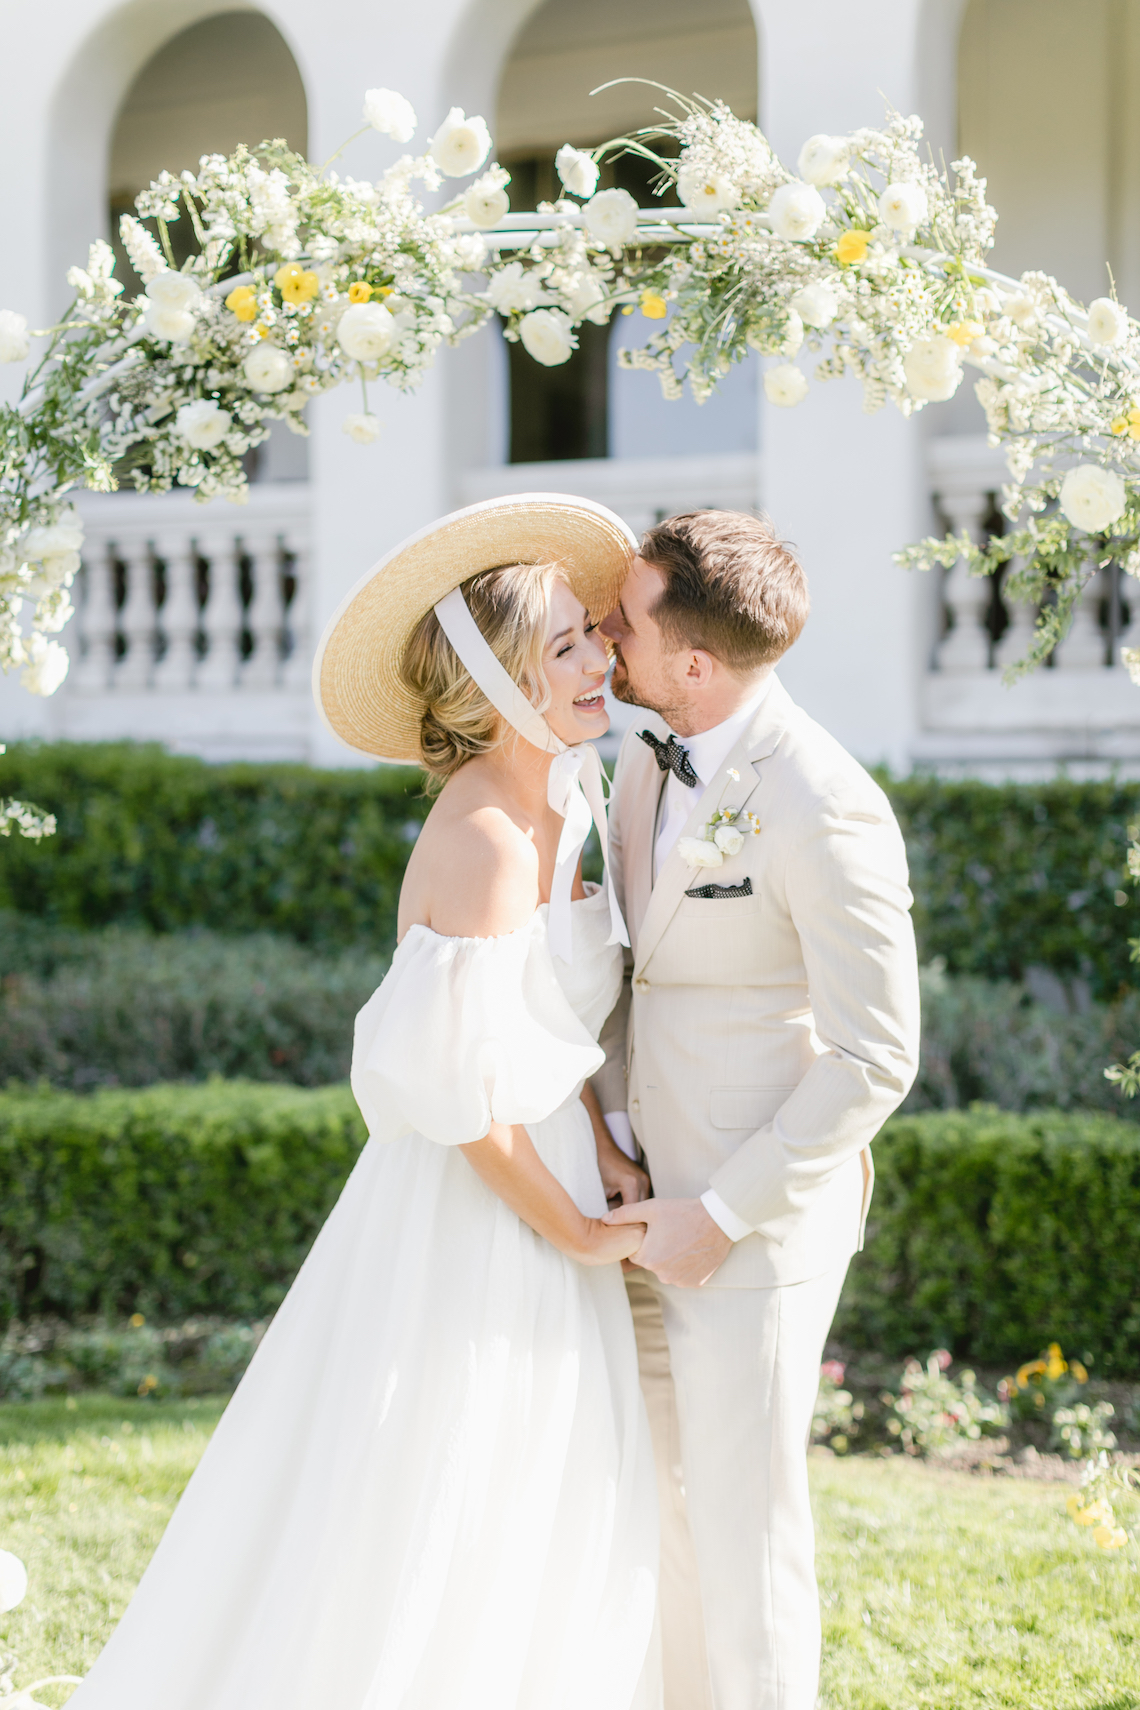 English Garden Afternoon Tea Wedding Inspiration – Lorin Kelly Photography – Bowties and Bouquets – Bridal Musings 47